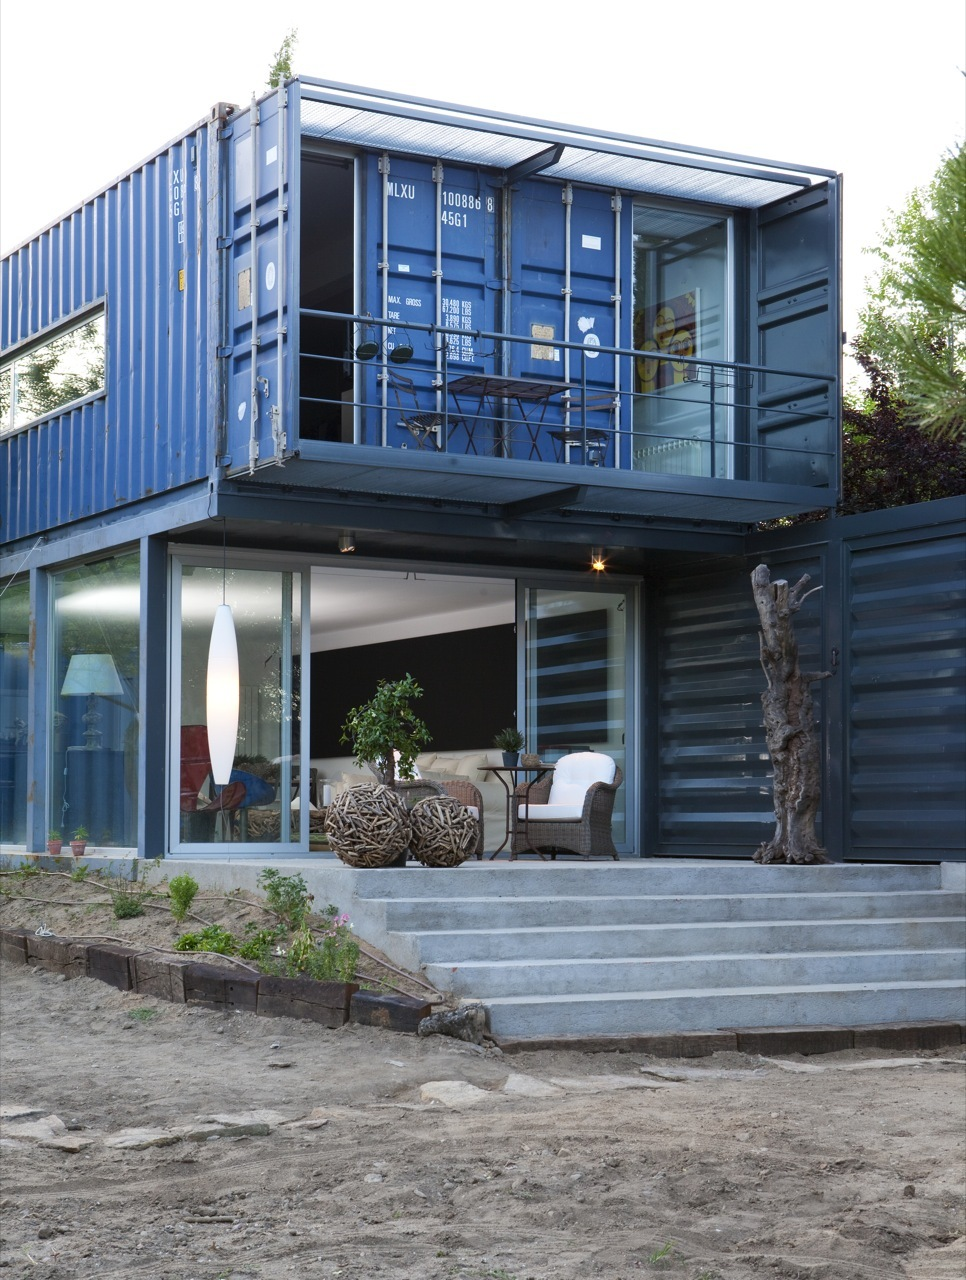 Shipping container homes two story container house in el tiemblo spain - Container homes alberta ...